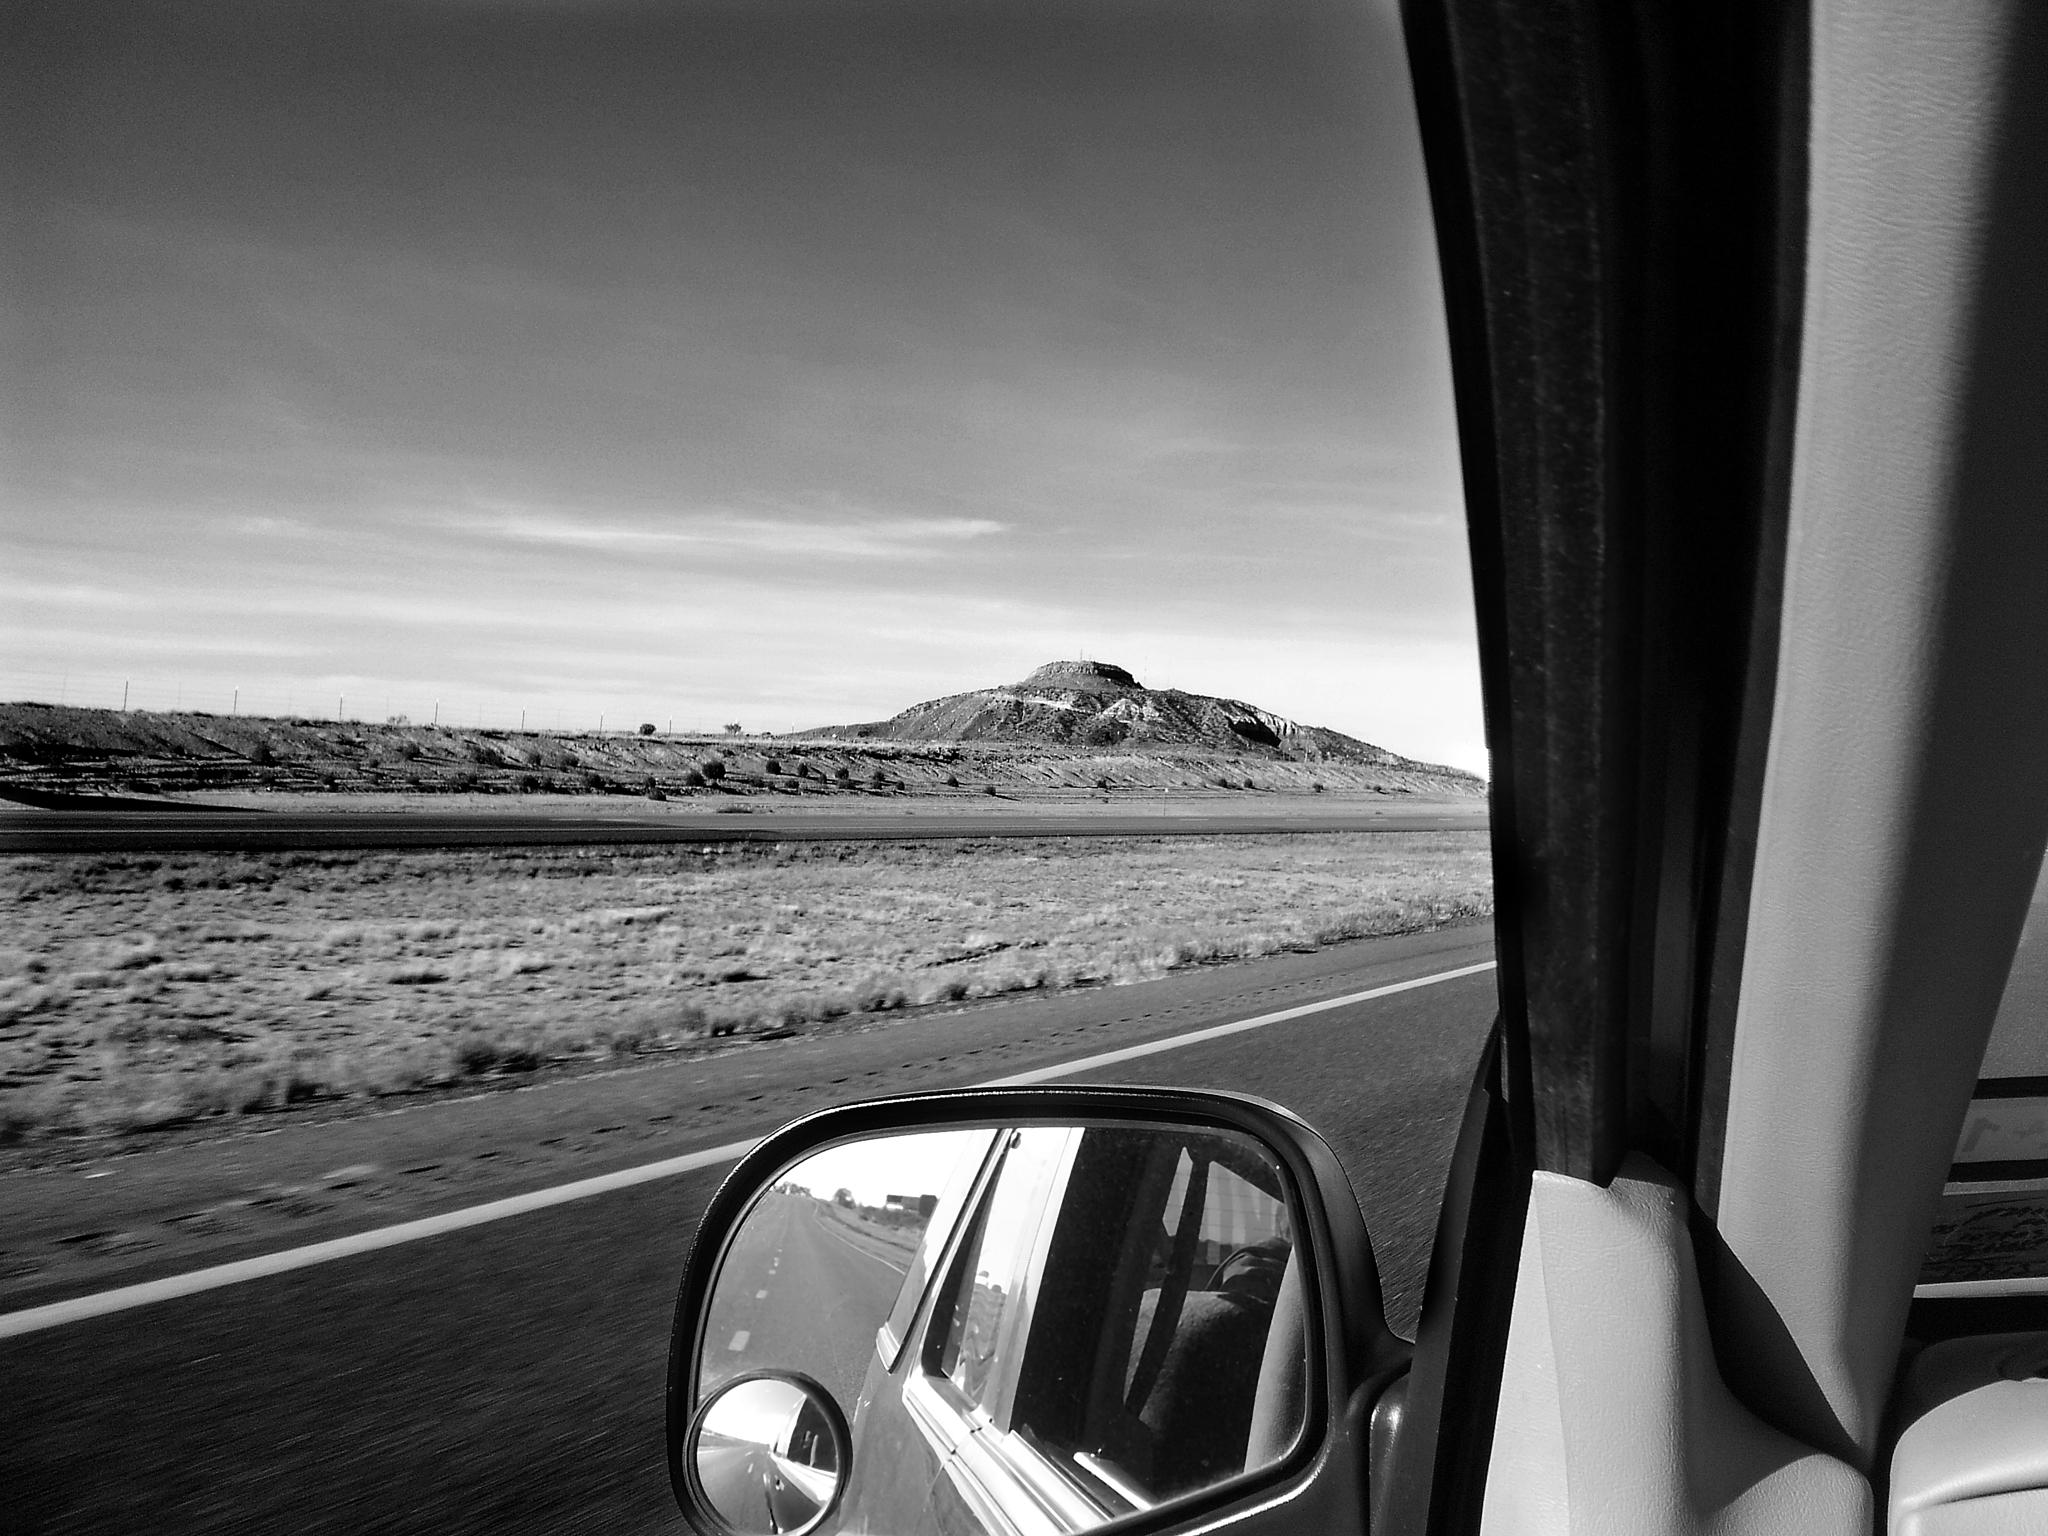 Road Trip, New Mexico by Tony Coelho Ramos